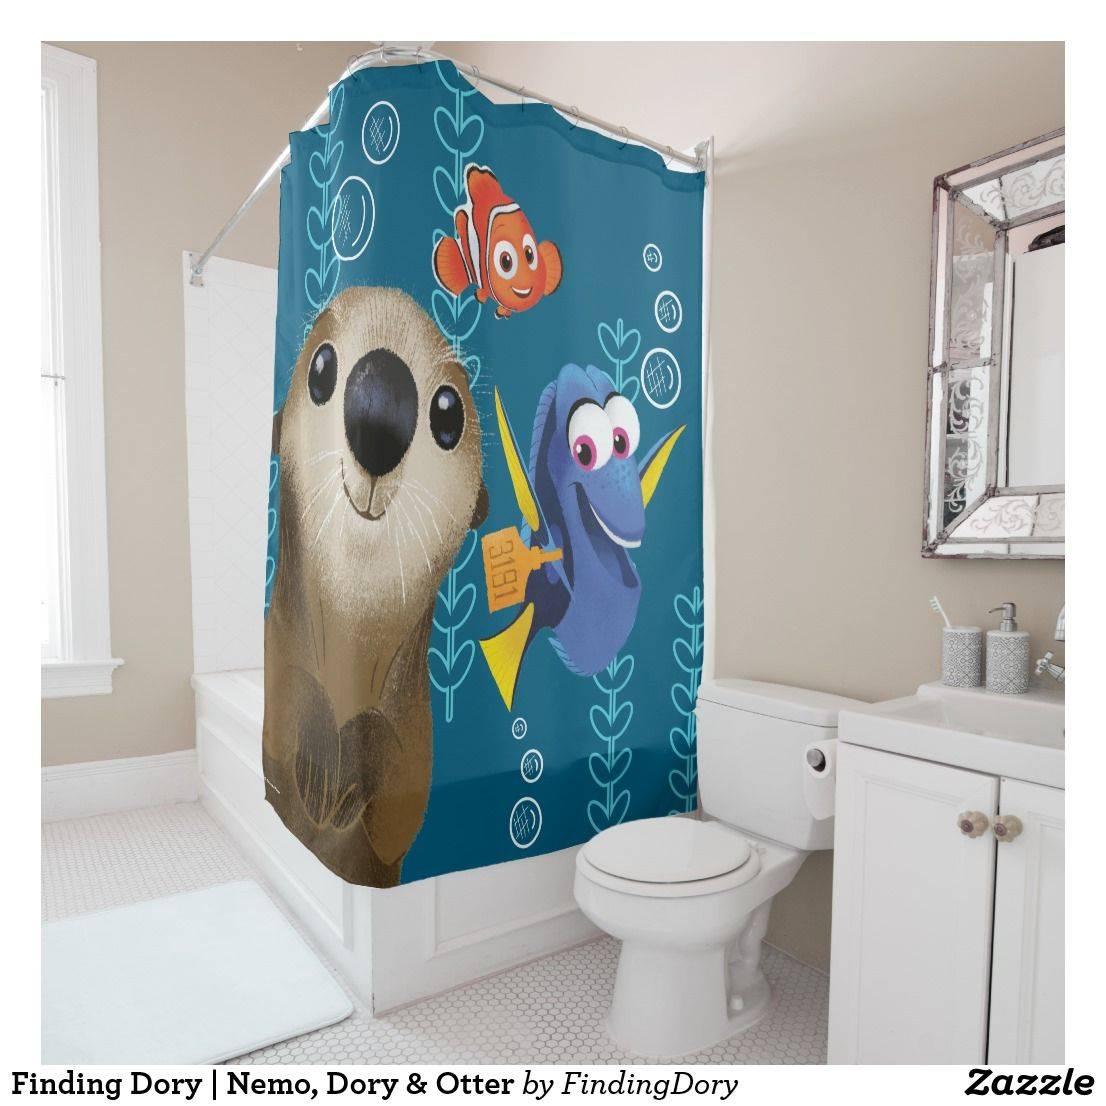 Finding Dory Nemo Dory Otter Shower Curtain Zazzle Com Kids Bathroom Accessories Teal Bathroom Decor Striped Shower Curtains